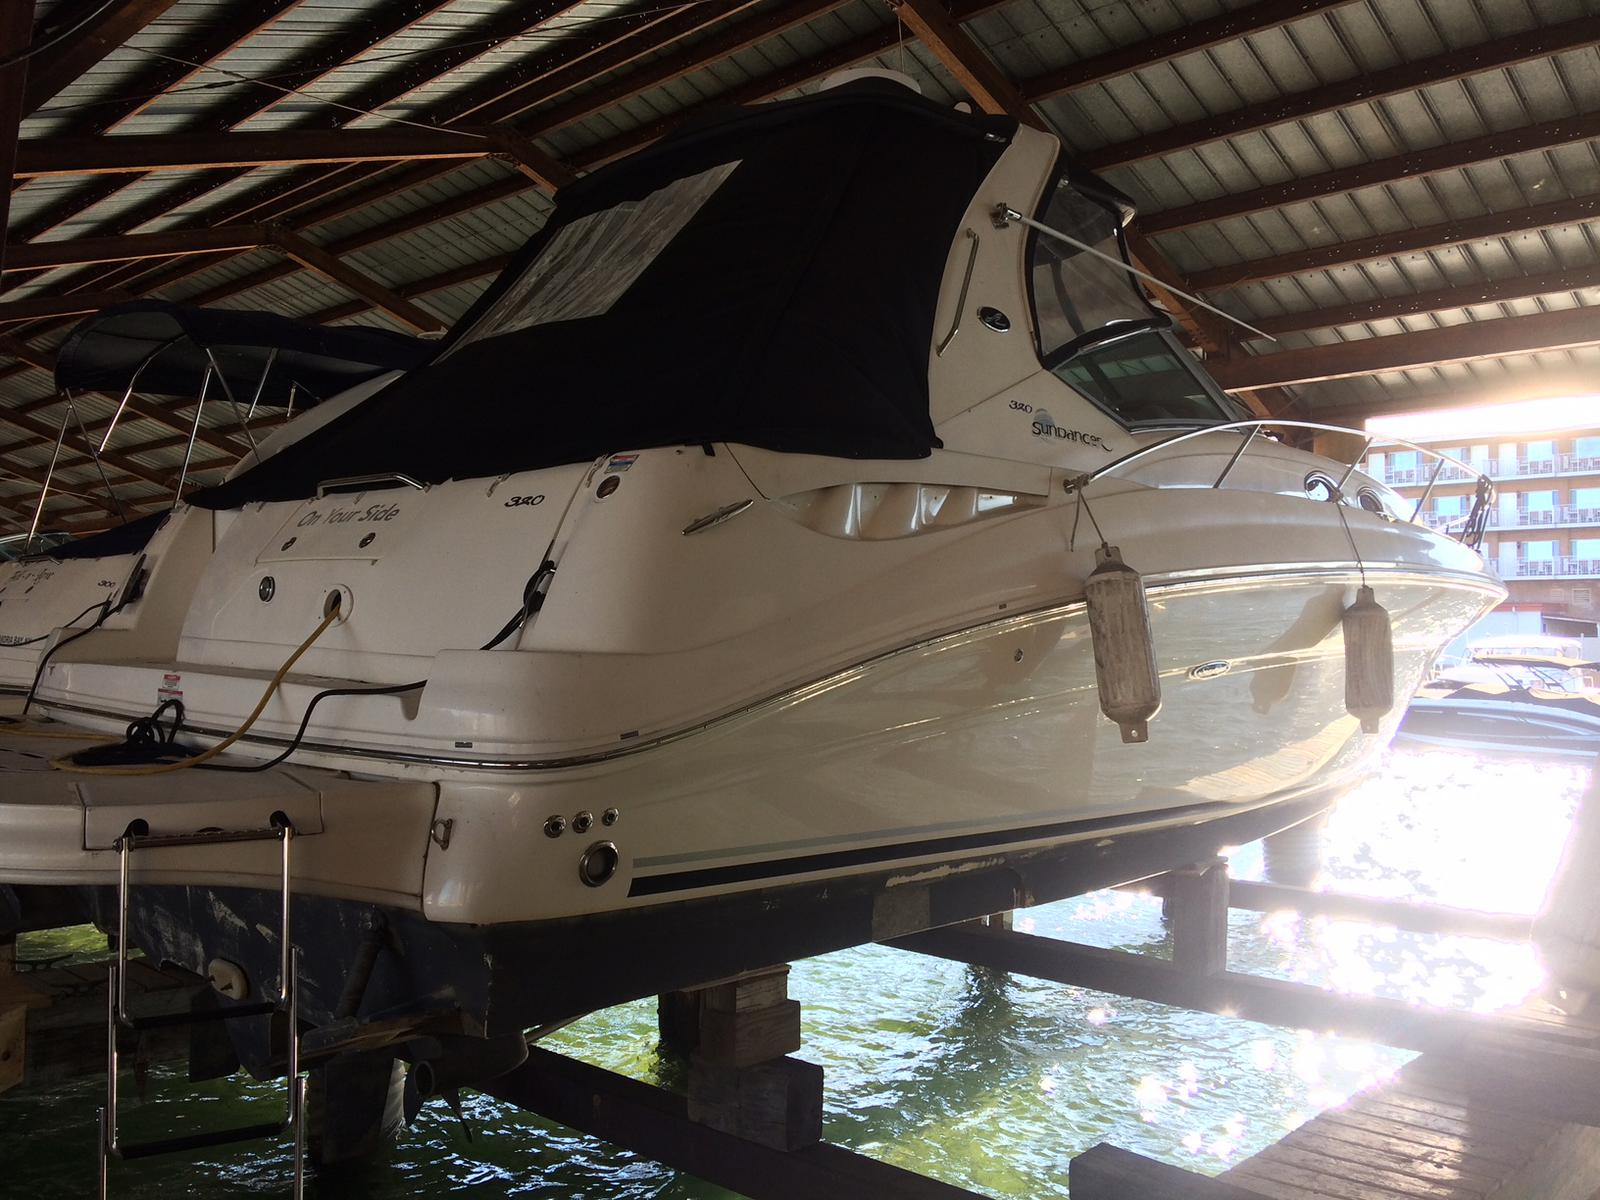 Used 2007 Sea Ray 320 Sundancer - Hutchinson's Boat Works